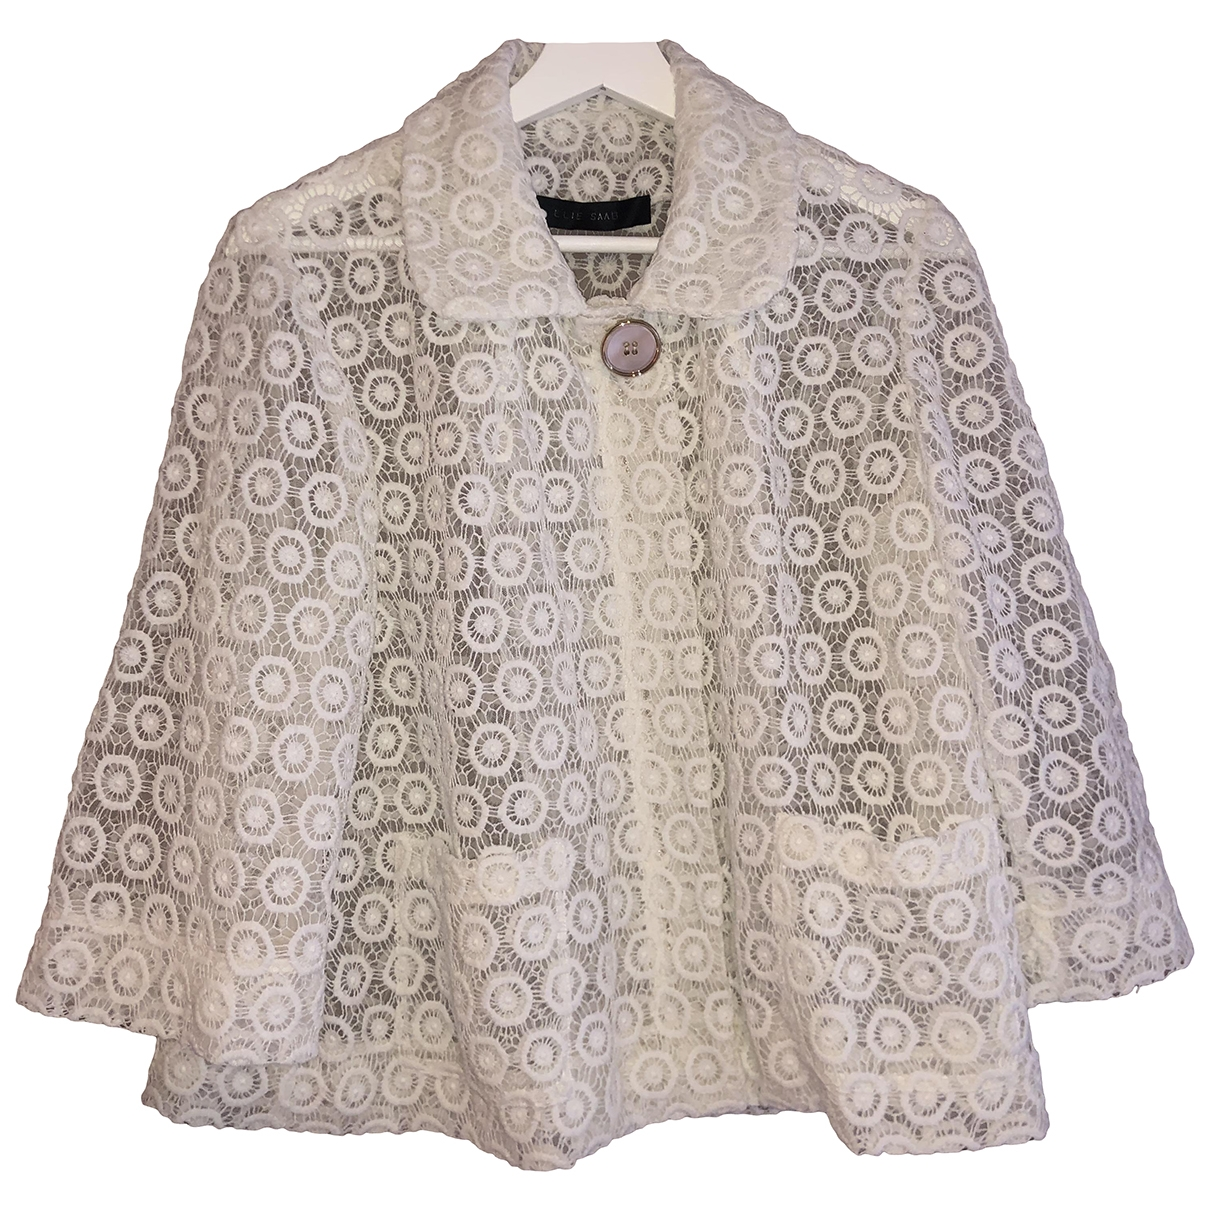 Elie Saab \N White jacket for Women 38 FR